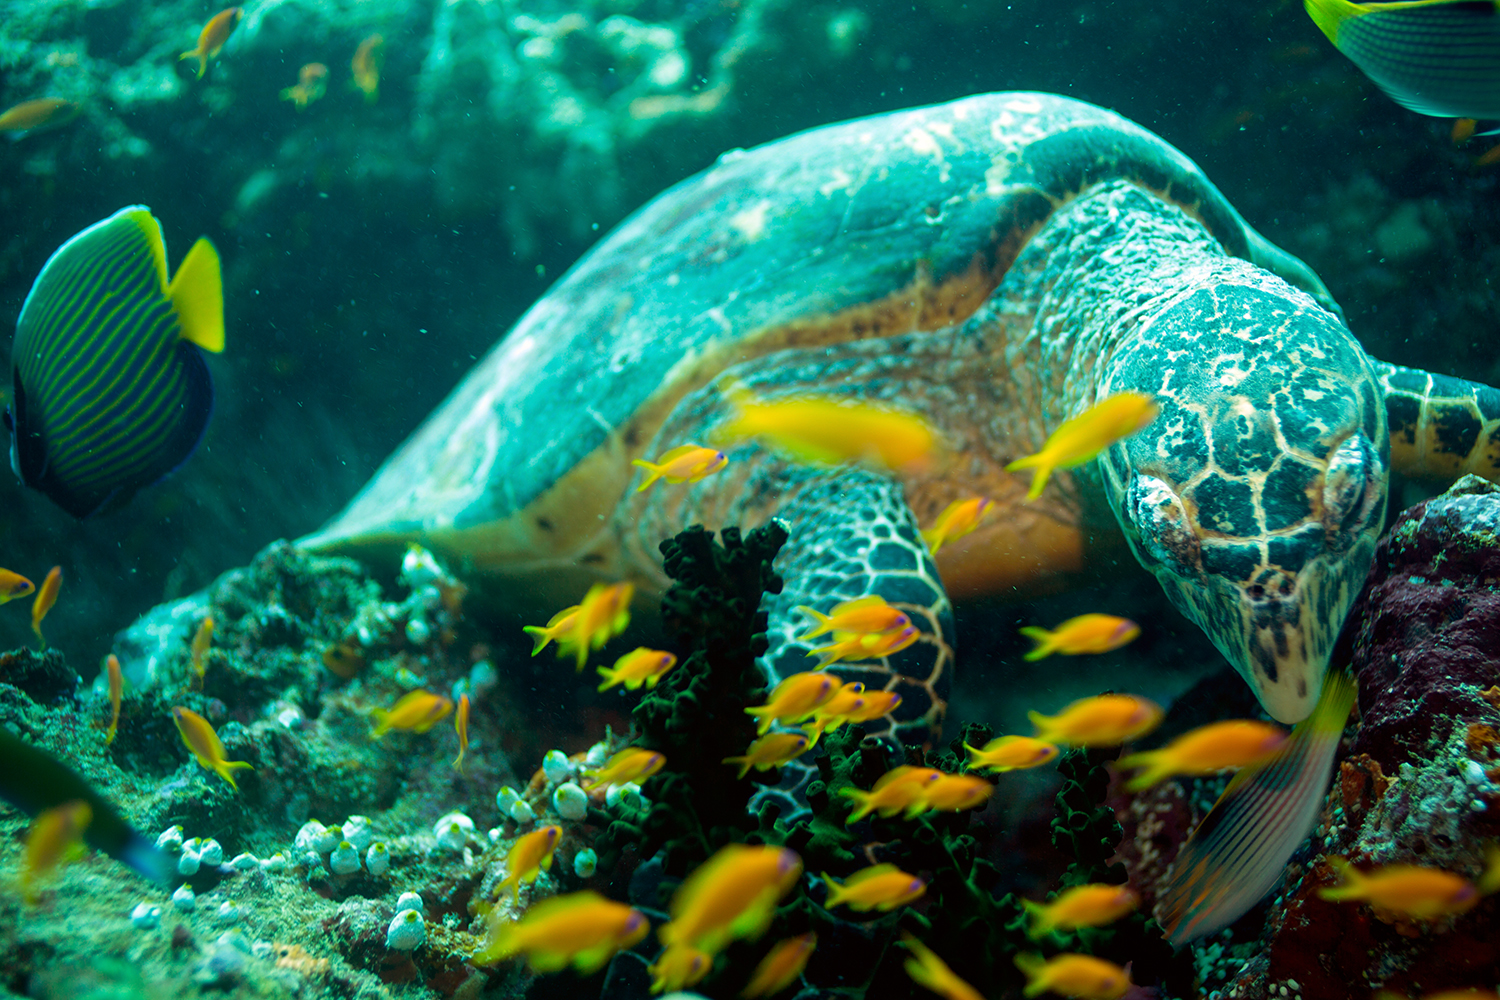 One of the best Thilas I have been on in the Maldives. Epic dive with 5 turtles.